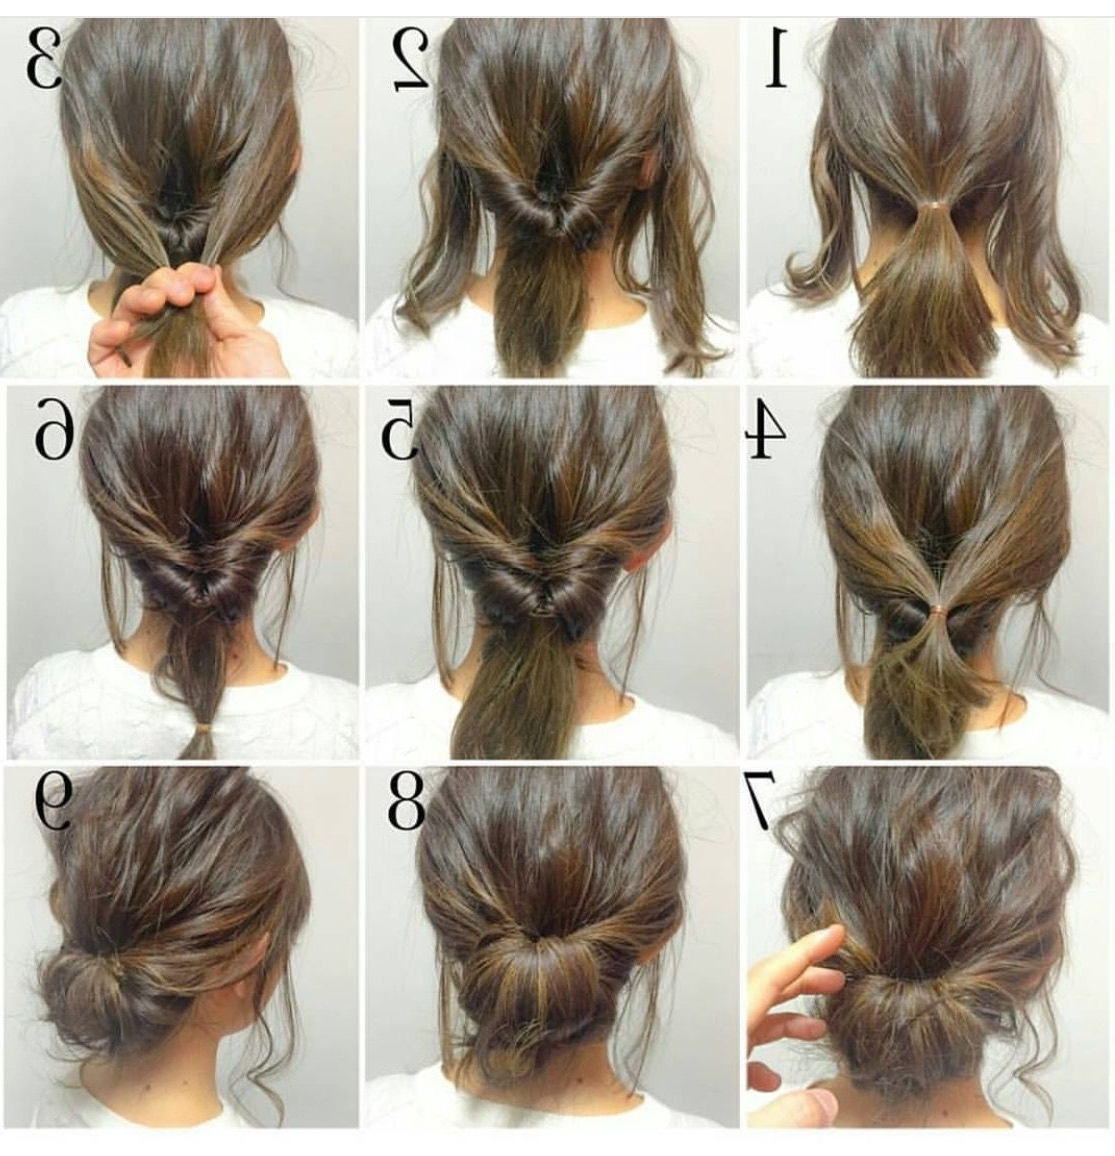 4 Messy Updos For Long Hair | Hairz | Pinterest | Updos, Hair Style Intended For Easy Updo Hairstyles (View 6 of 15)